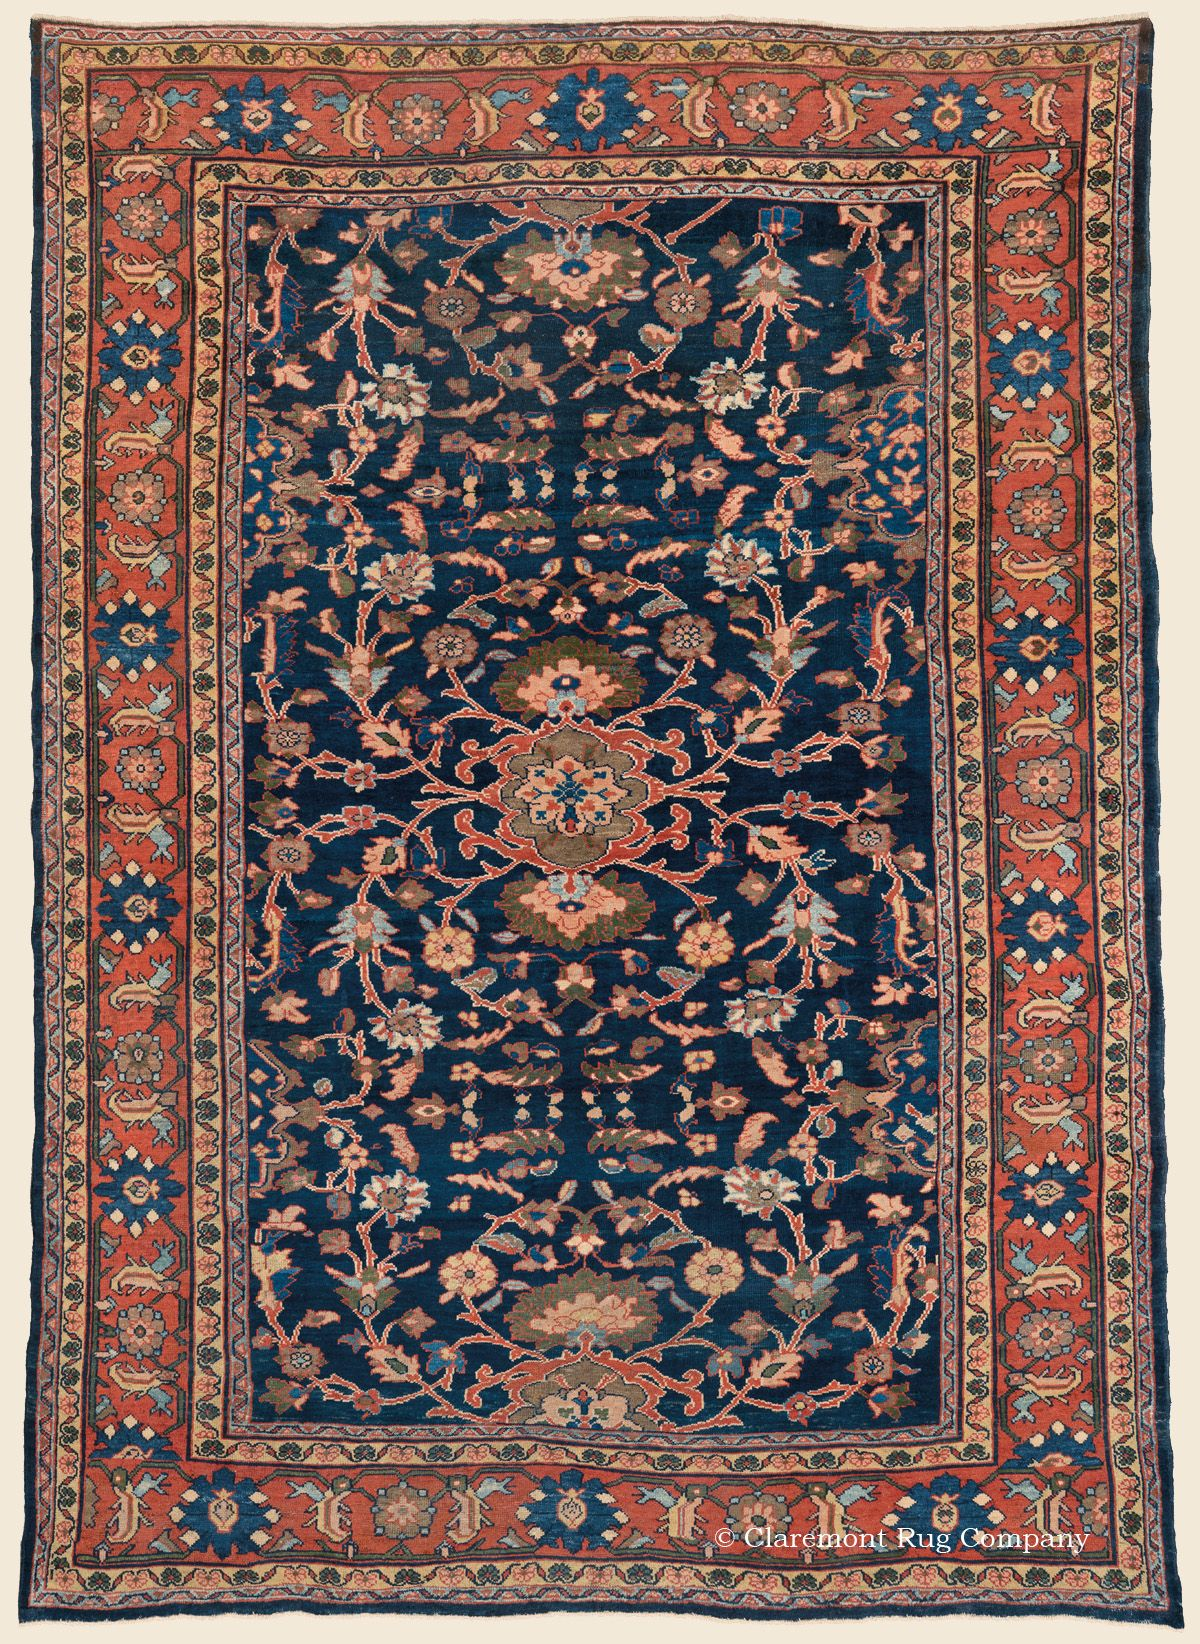 Mahal 8 10 X 12 3 Circa 1910 Price 16 000 West Central Persian Antique Rug Claremont Rug Company Antique Persian Carpet Rugs Persian Carpet